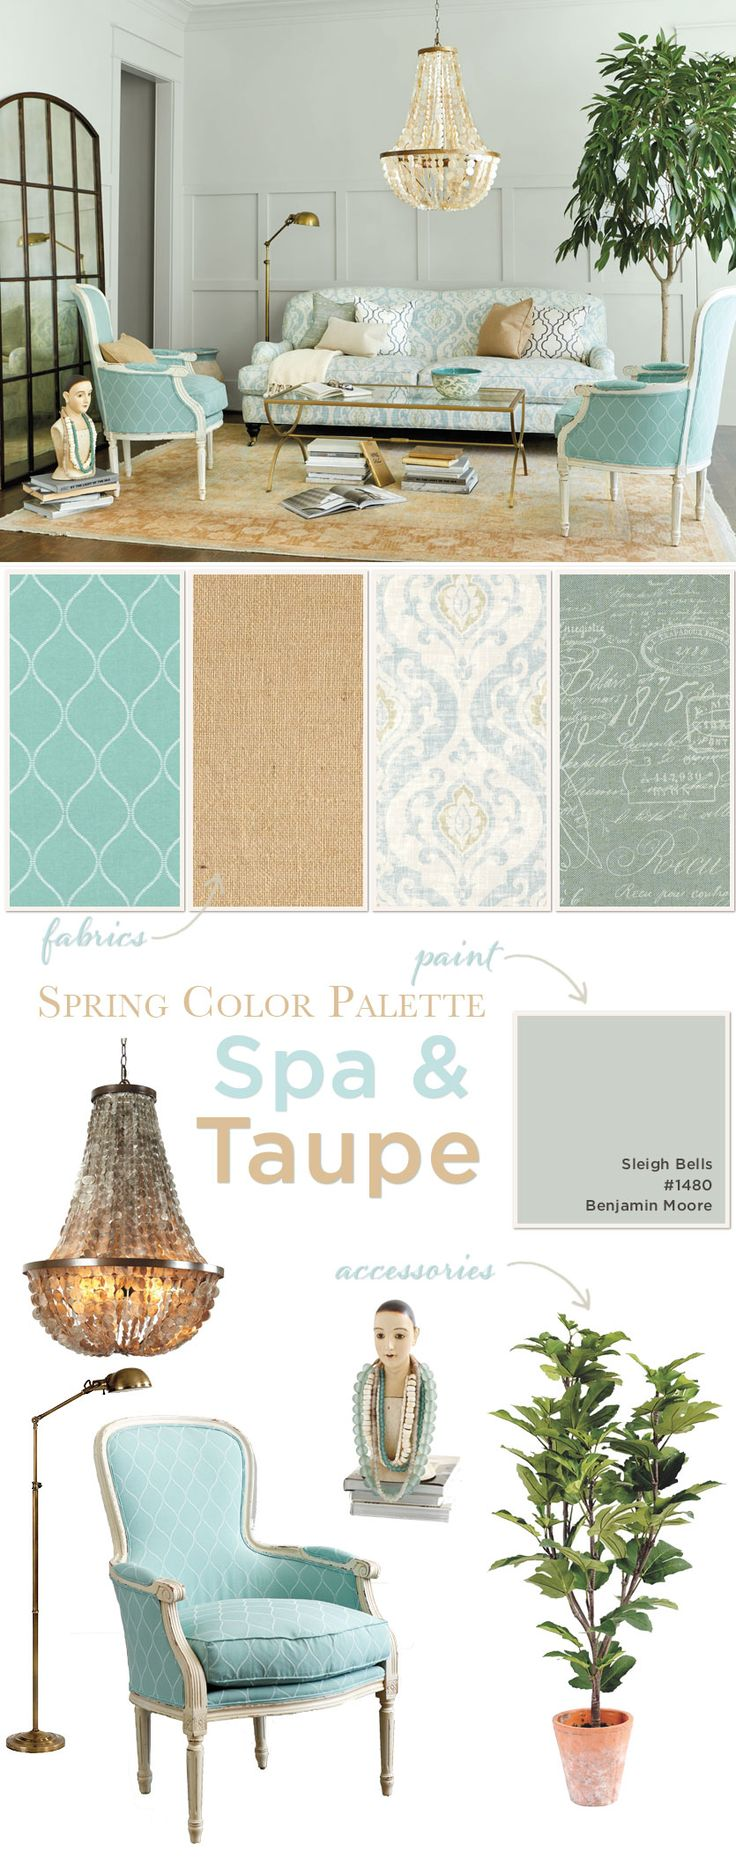 25+ Best Spring Color Palette Ideas On Pinterest | Spring Colors, Color  Combos And Color Combinations